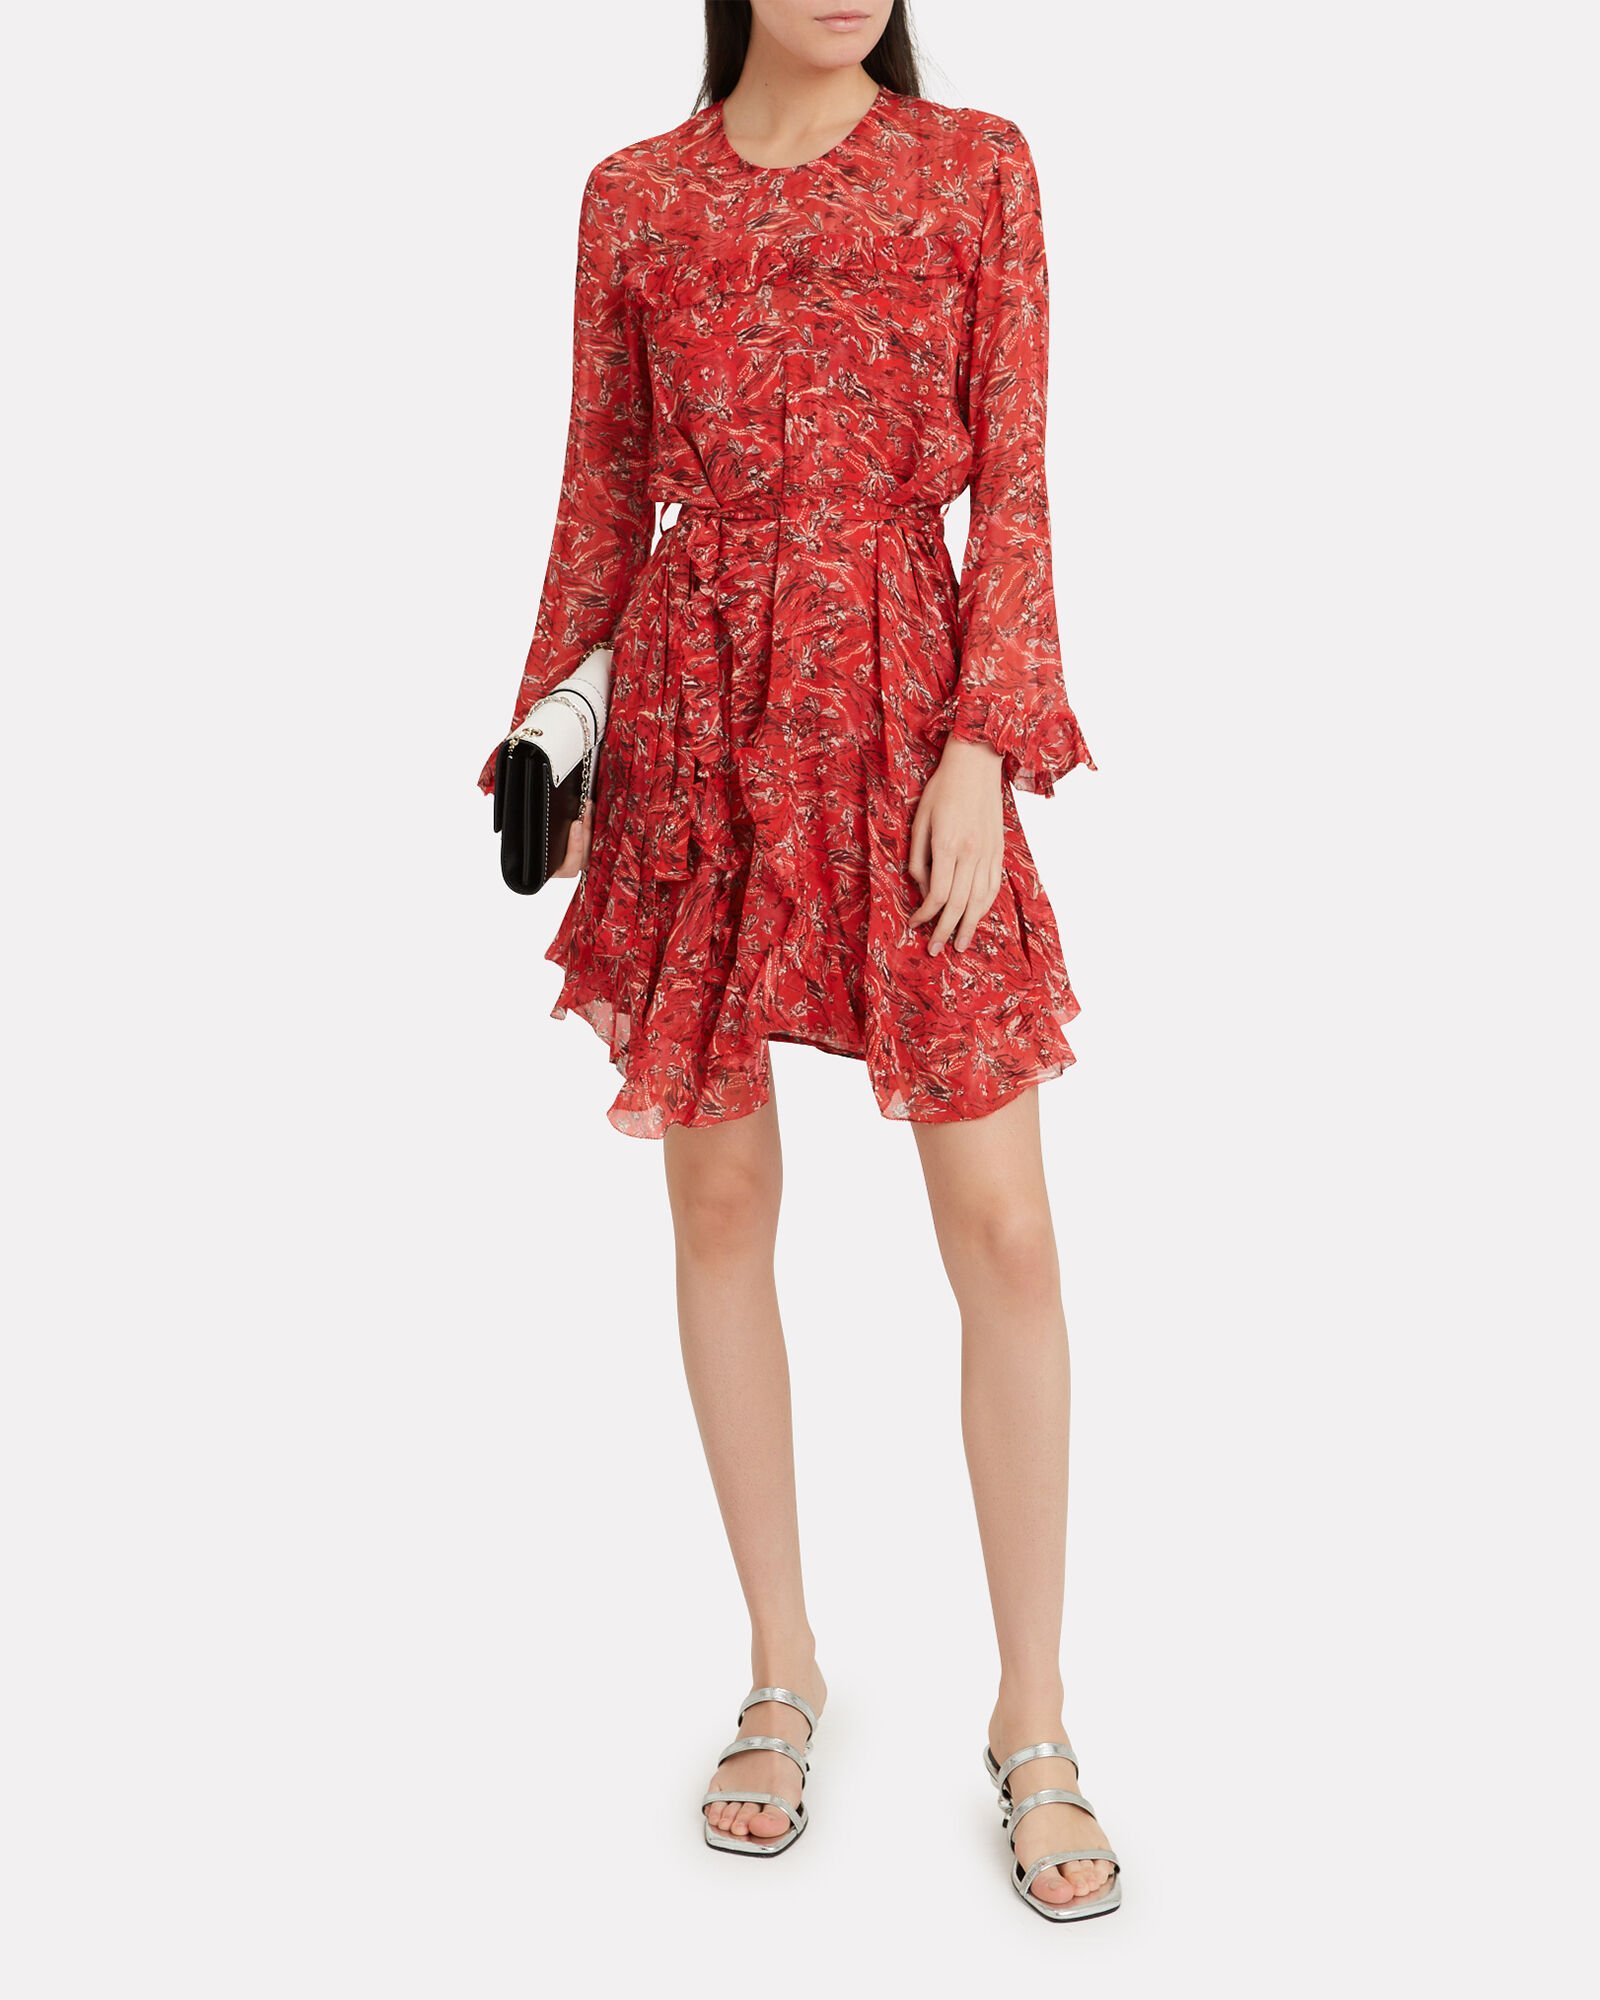 Floral Ruffle Trim Dress, RED/FLORAL, hi-res